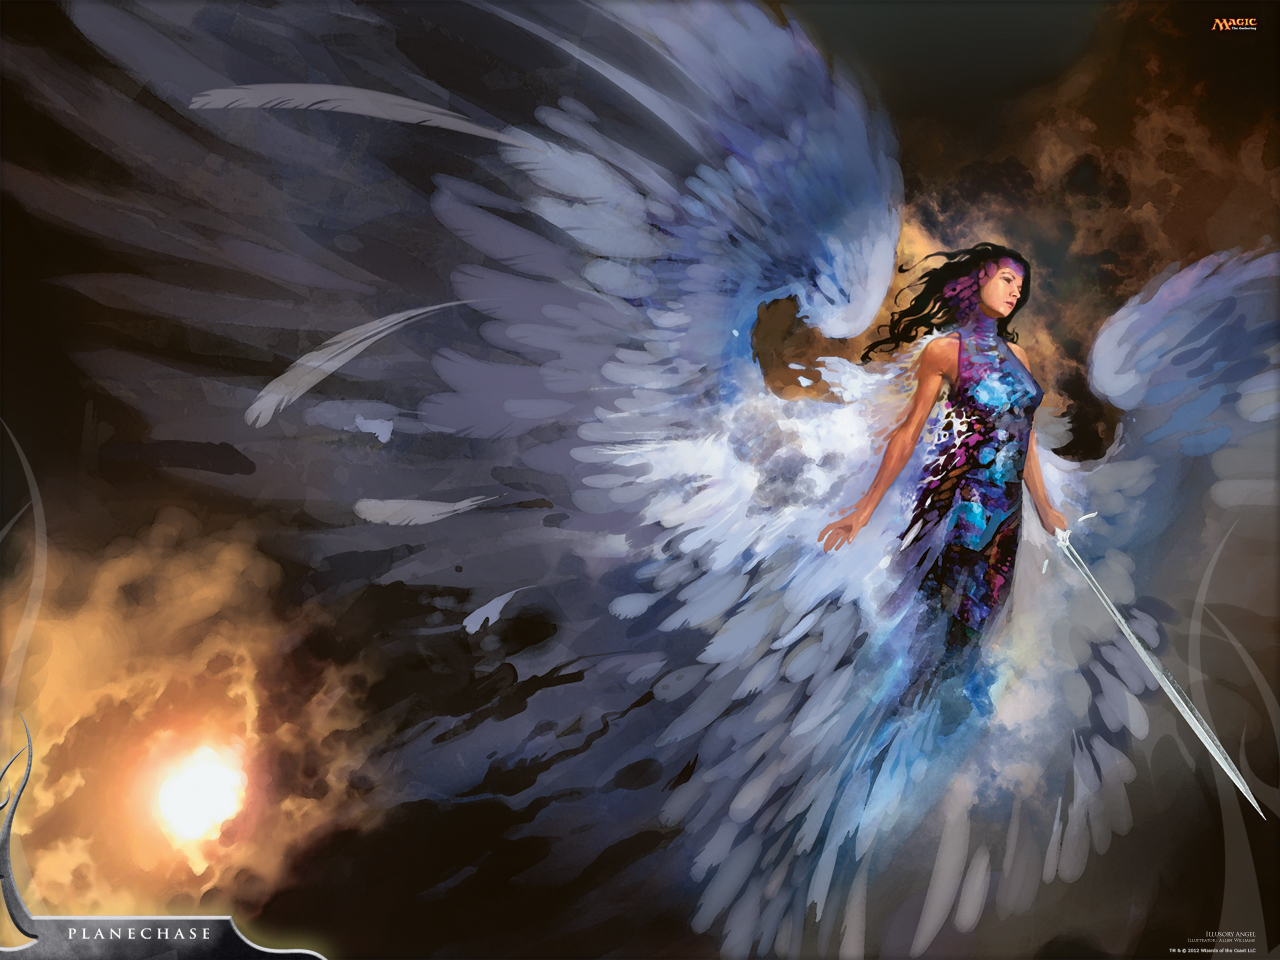 his weeks wallpaper features Allen Williamss Illusory Angel from 1280x960